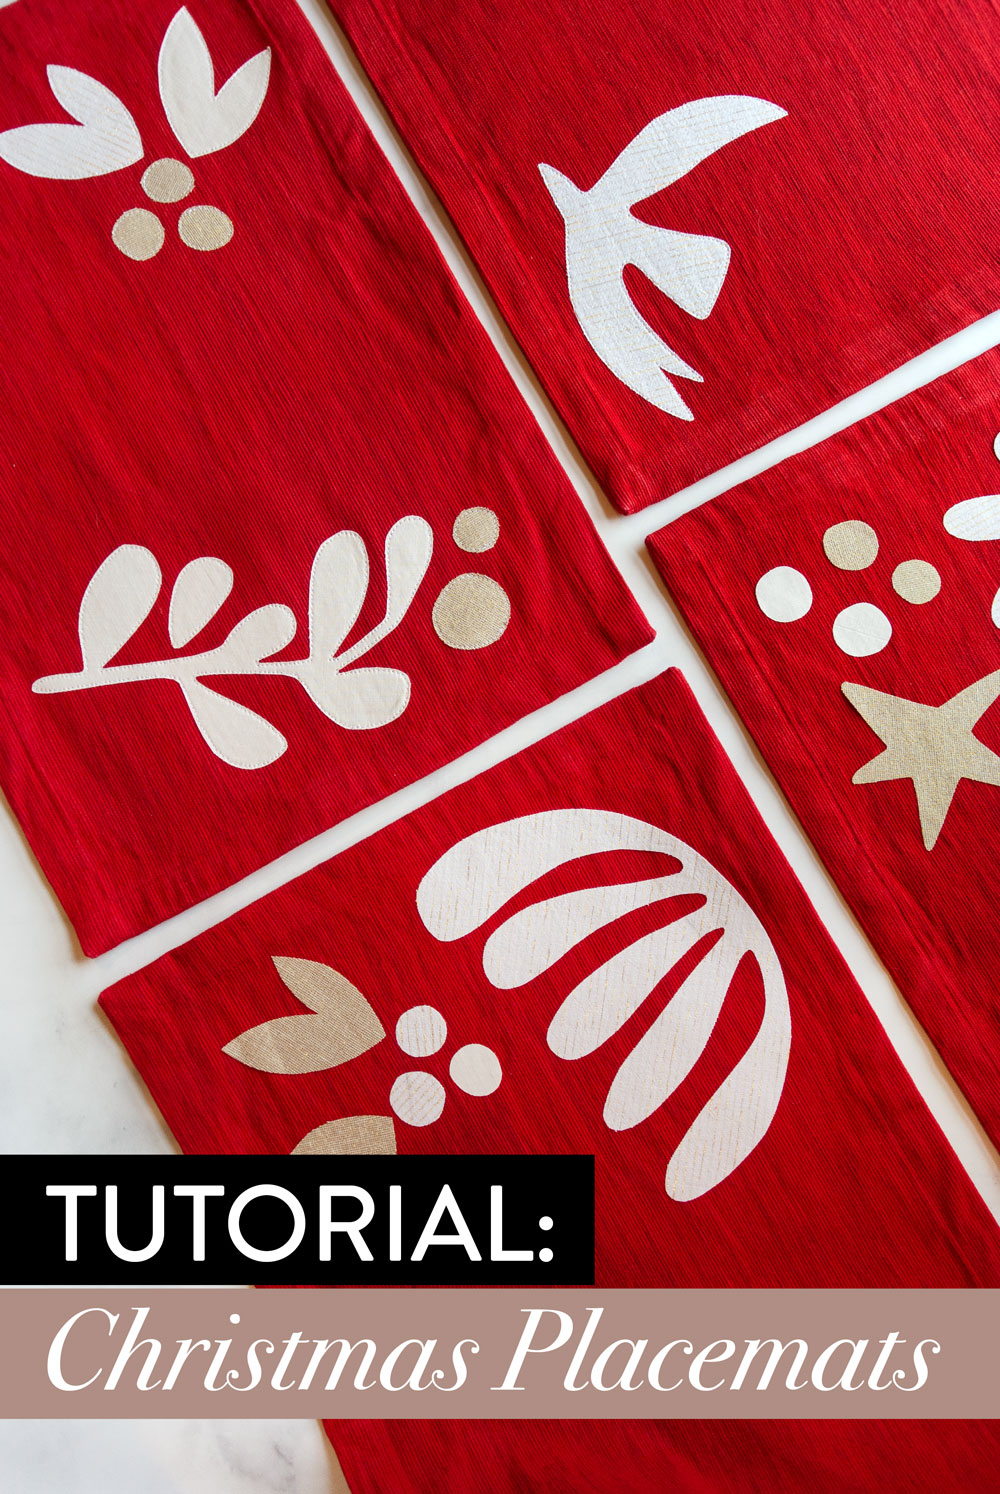 A FREE DIY Christmas placemats tutorial! This raw-edge applique sewing tutorial includes supplies, steps and a video tutorial PLUS free modern holiday applique templates! suzyquilts.com #ChristmasDIY #placematstutorial